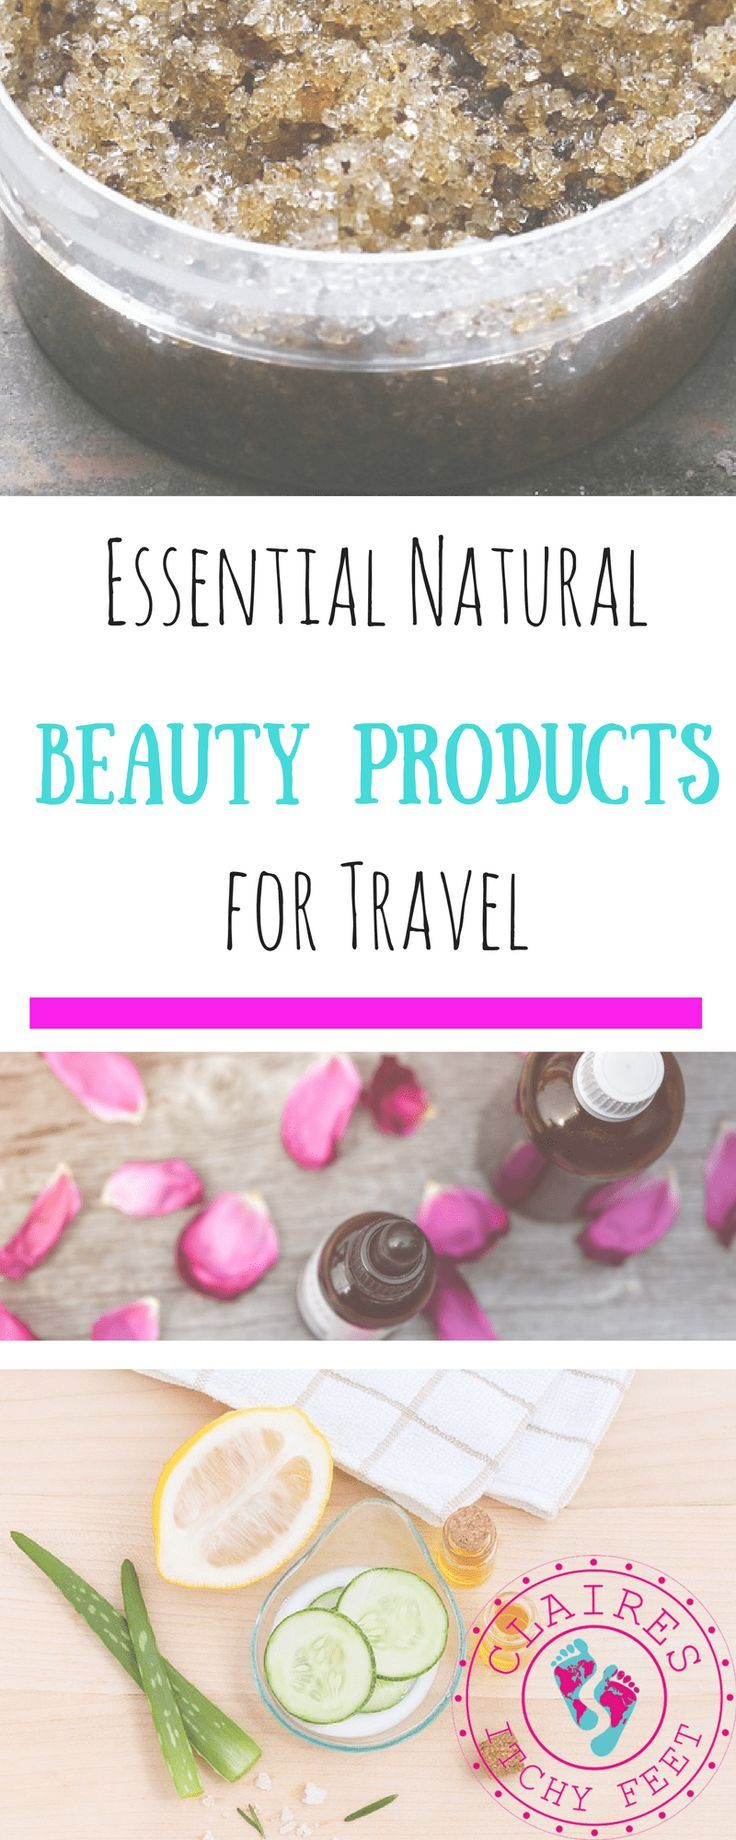 If you are a conscious traveler or even just a conscious person in general, you may be looking for some alternatives to replace your old beauty products. Here are my essential Natural Beauty Products for Travel.